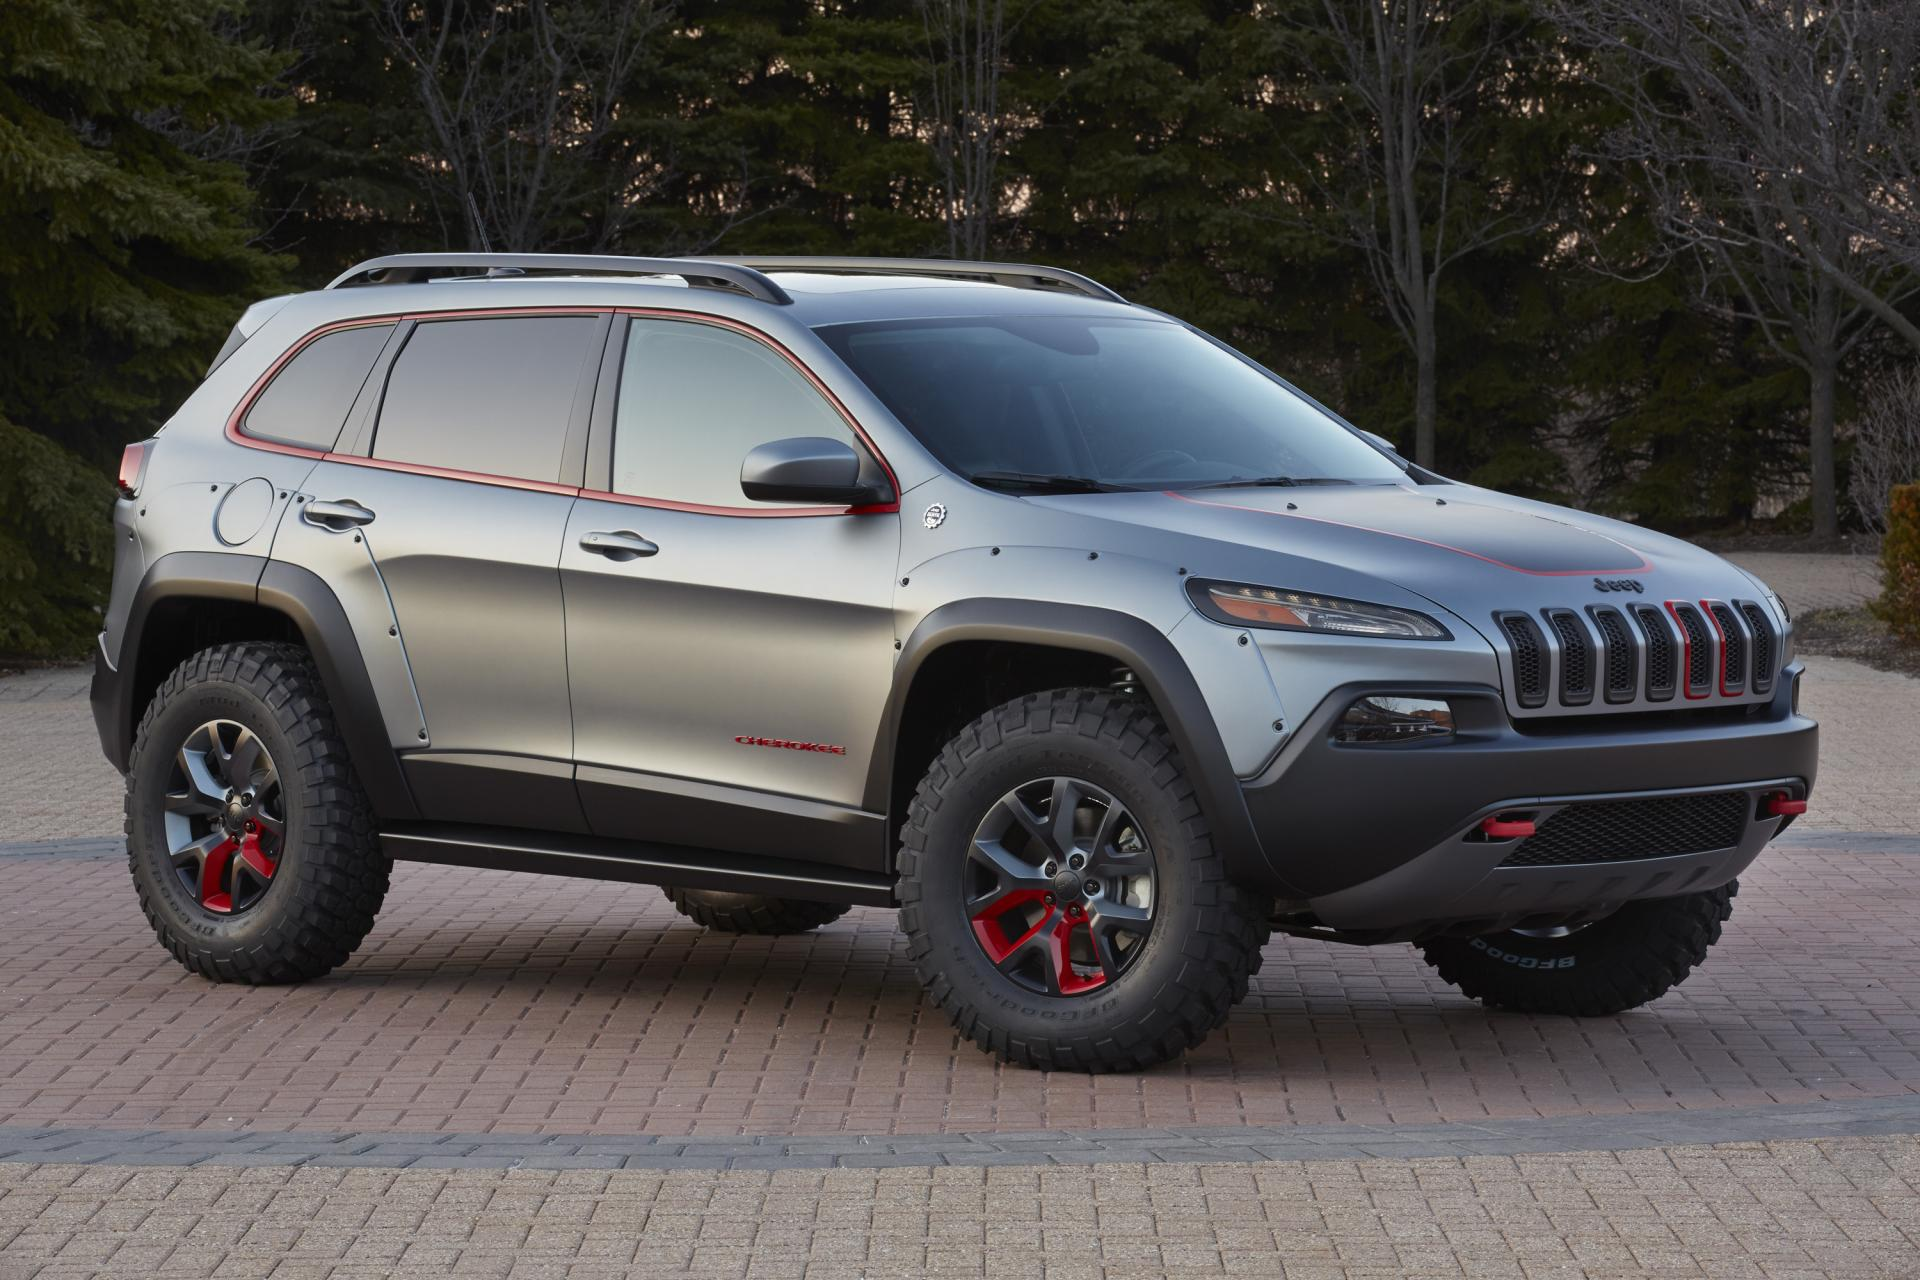 2011 Jeep Grand Cherokee Body Kit >> 2014 Jeep Cherokee Dakar News and Information